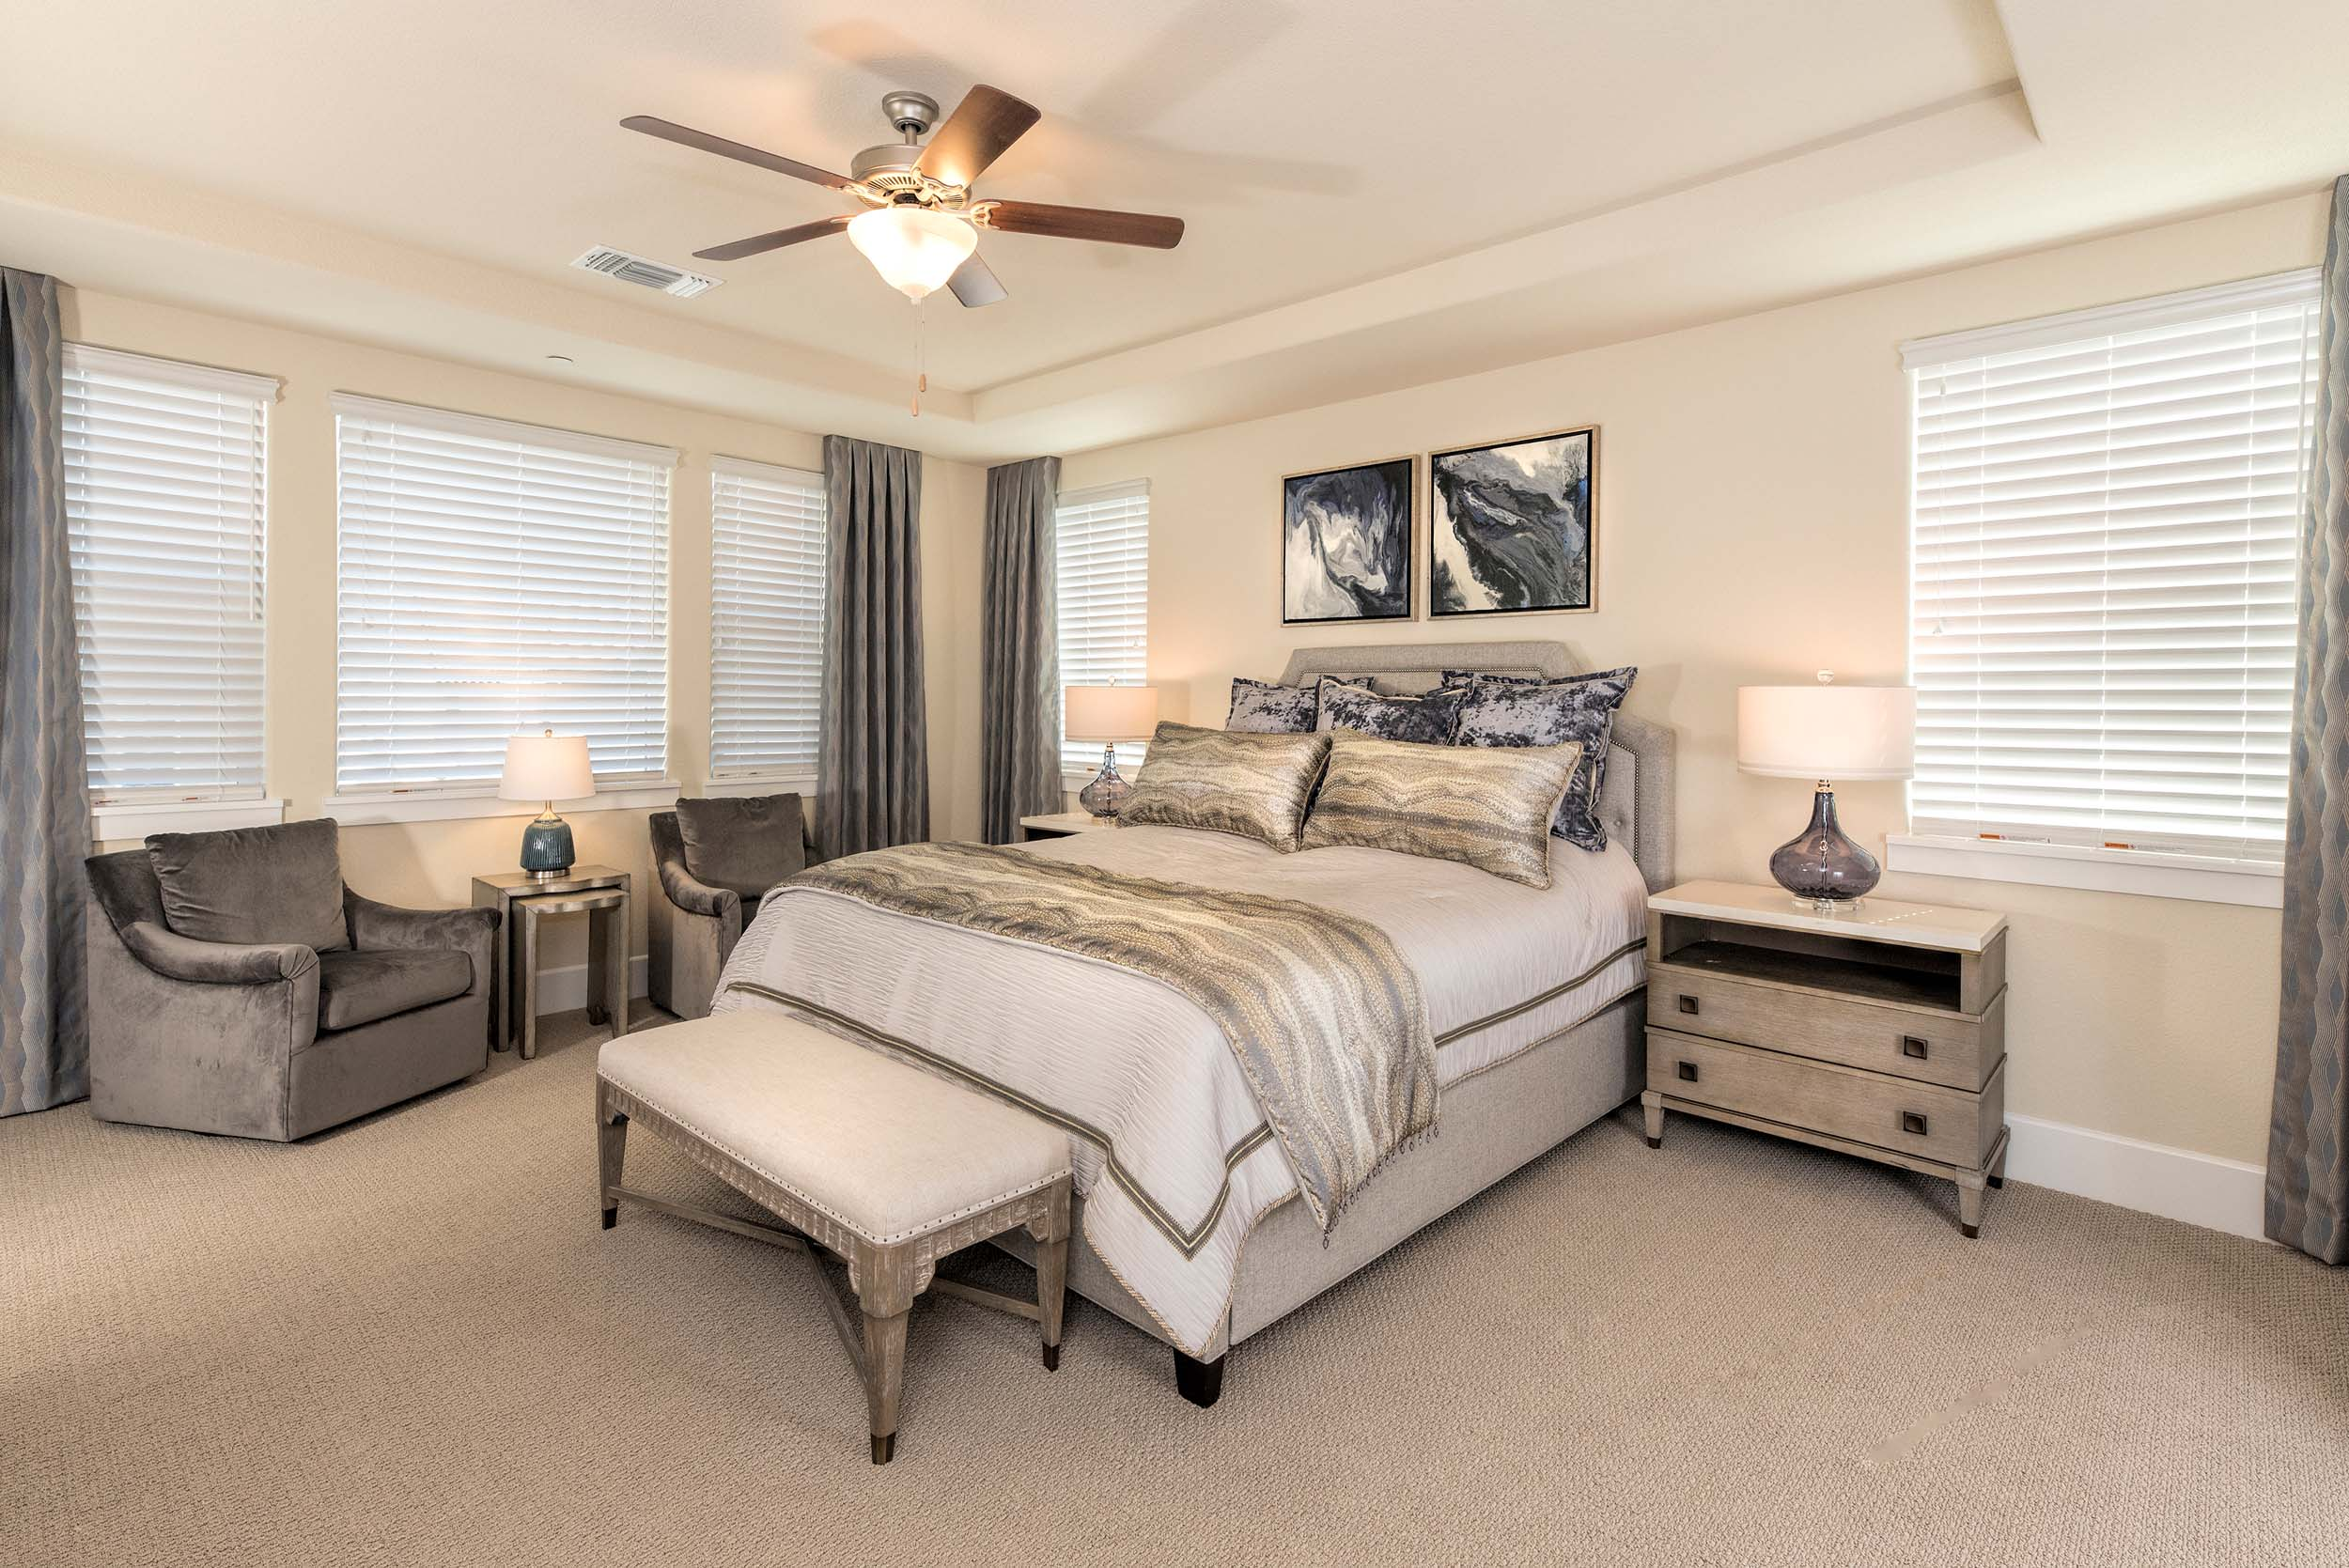 Modern bedroom with bed, bedside table, table lamps, ceiling fan and armchair